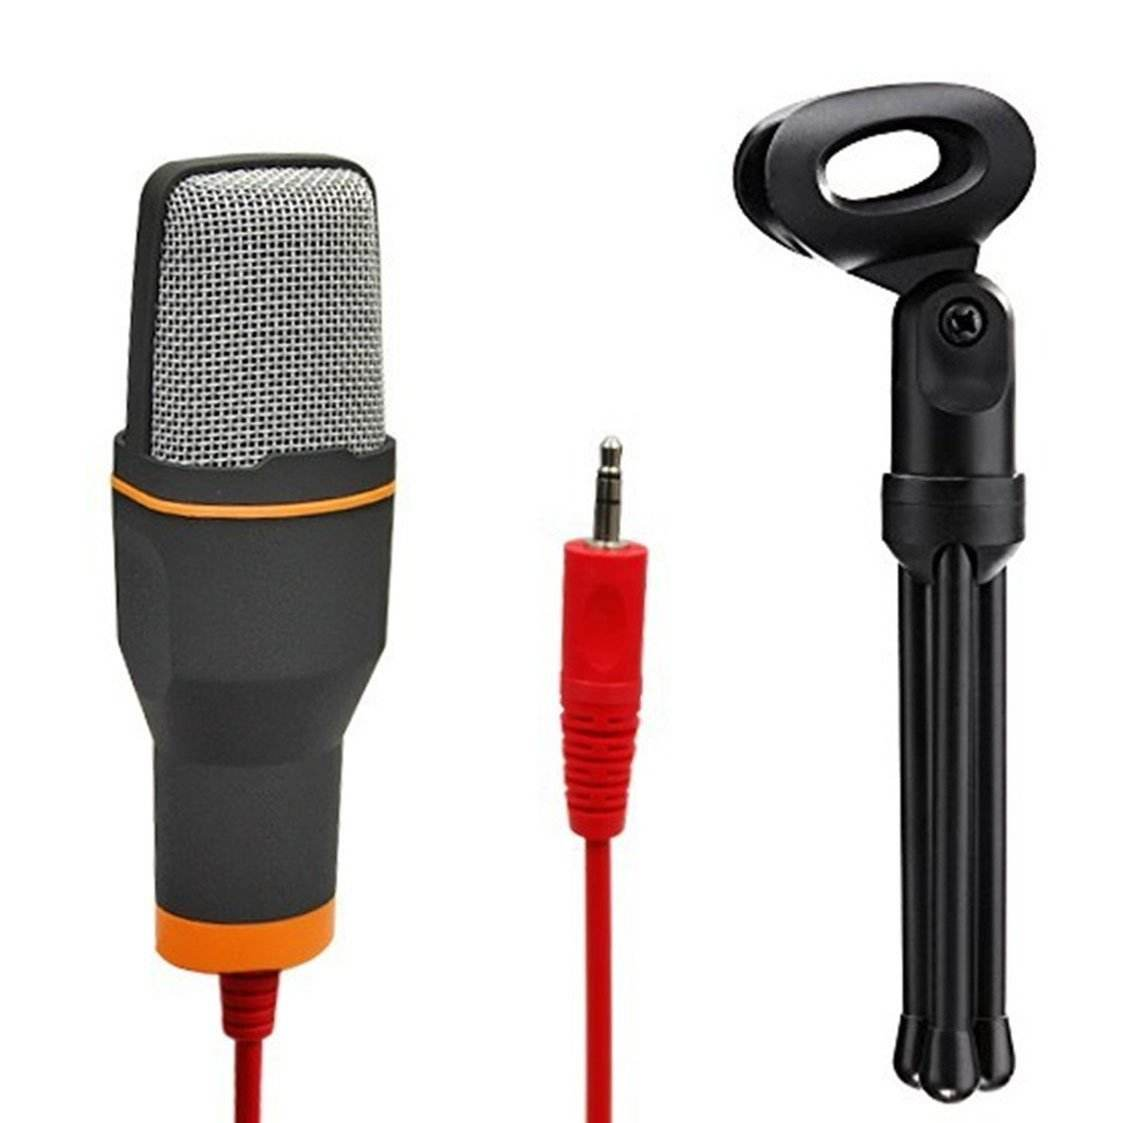 Top selling SF-666 Condenser Microphone with Desktop Stand for PC Computer Laptop Recording Chatting Gaming Singing